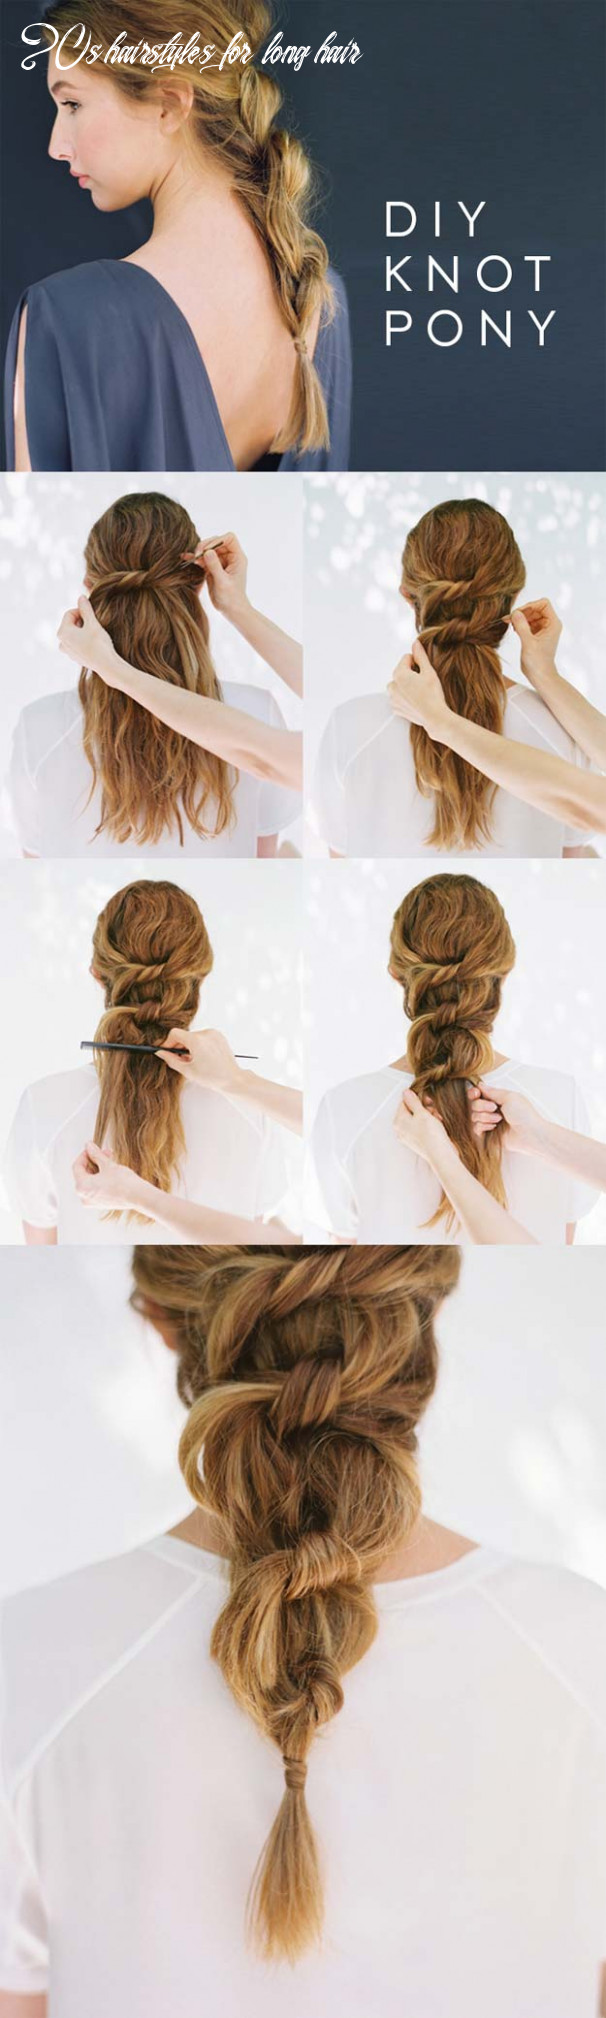 9s Hairstyles For Long Hair | Find your Perfect Hair Style